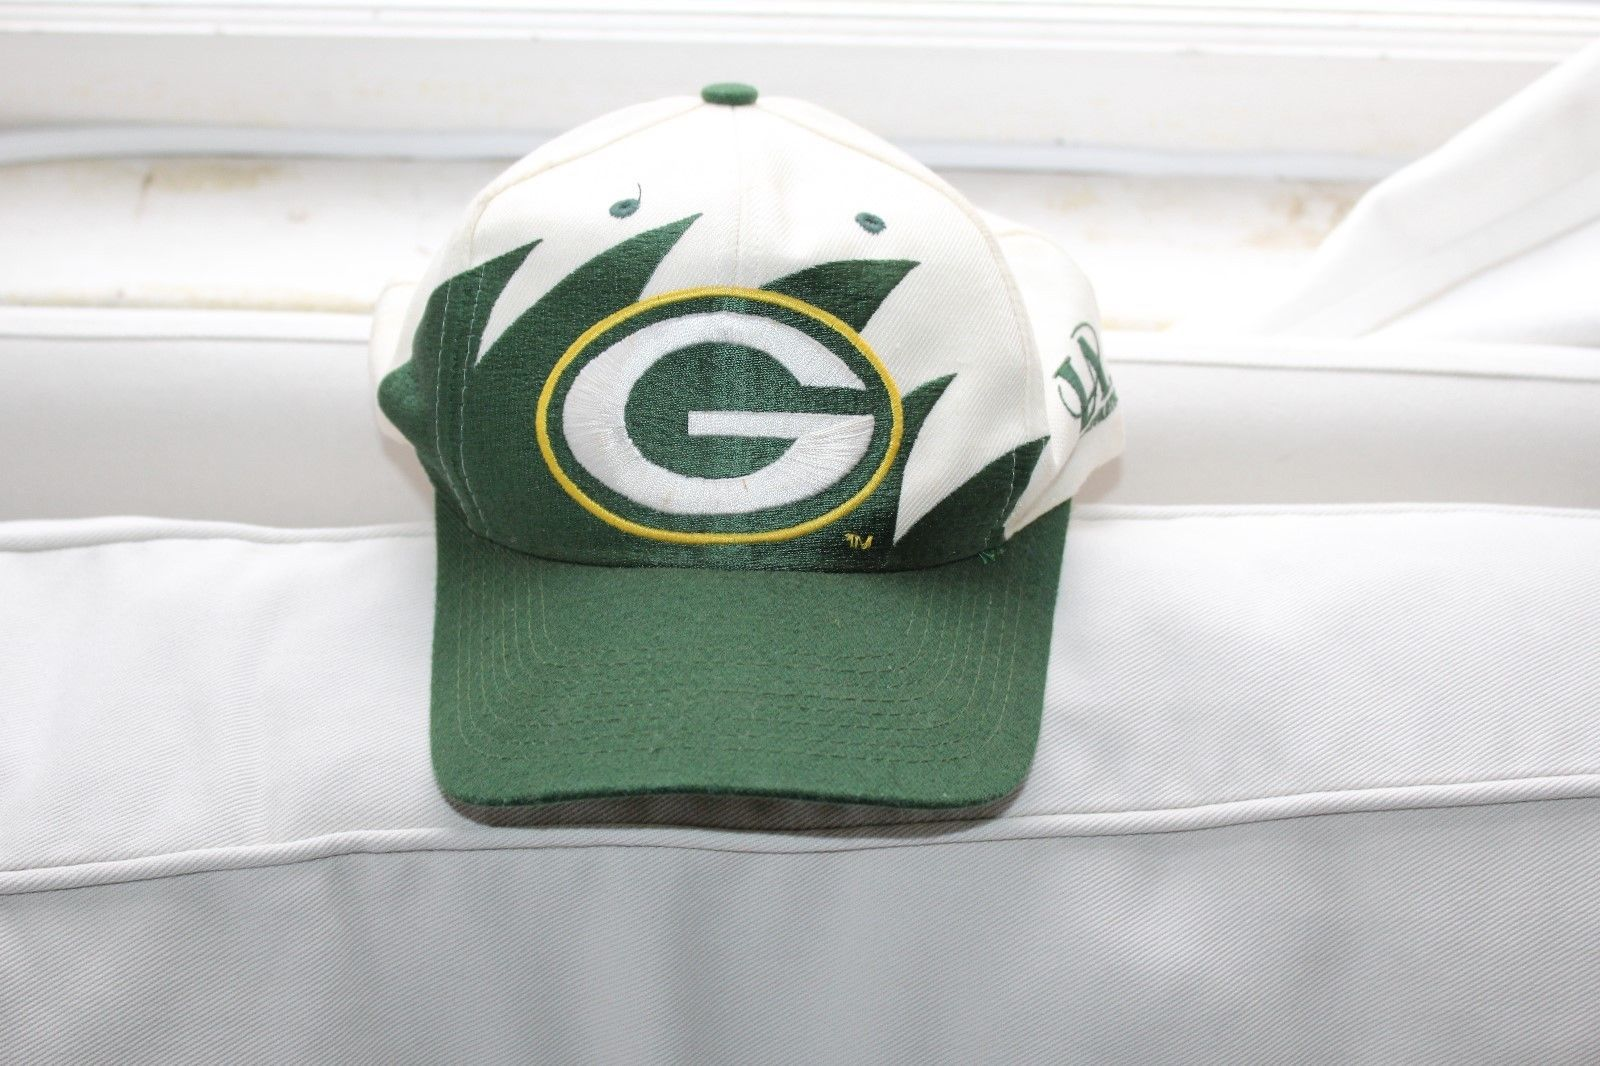 043686dc683 57. 57. Previous. Vintage 1990s GREEN BAY PACKERS NFL Logo Athletic  Sharktooth Snapback Hat Cap